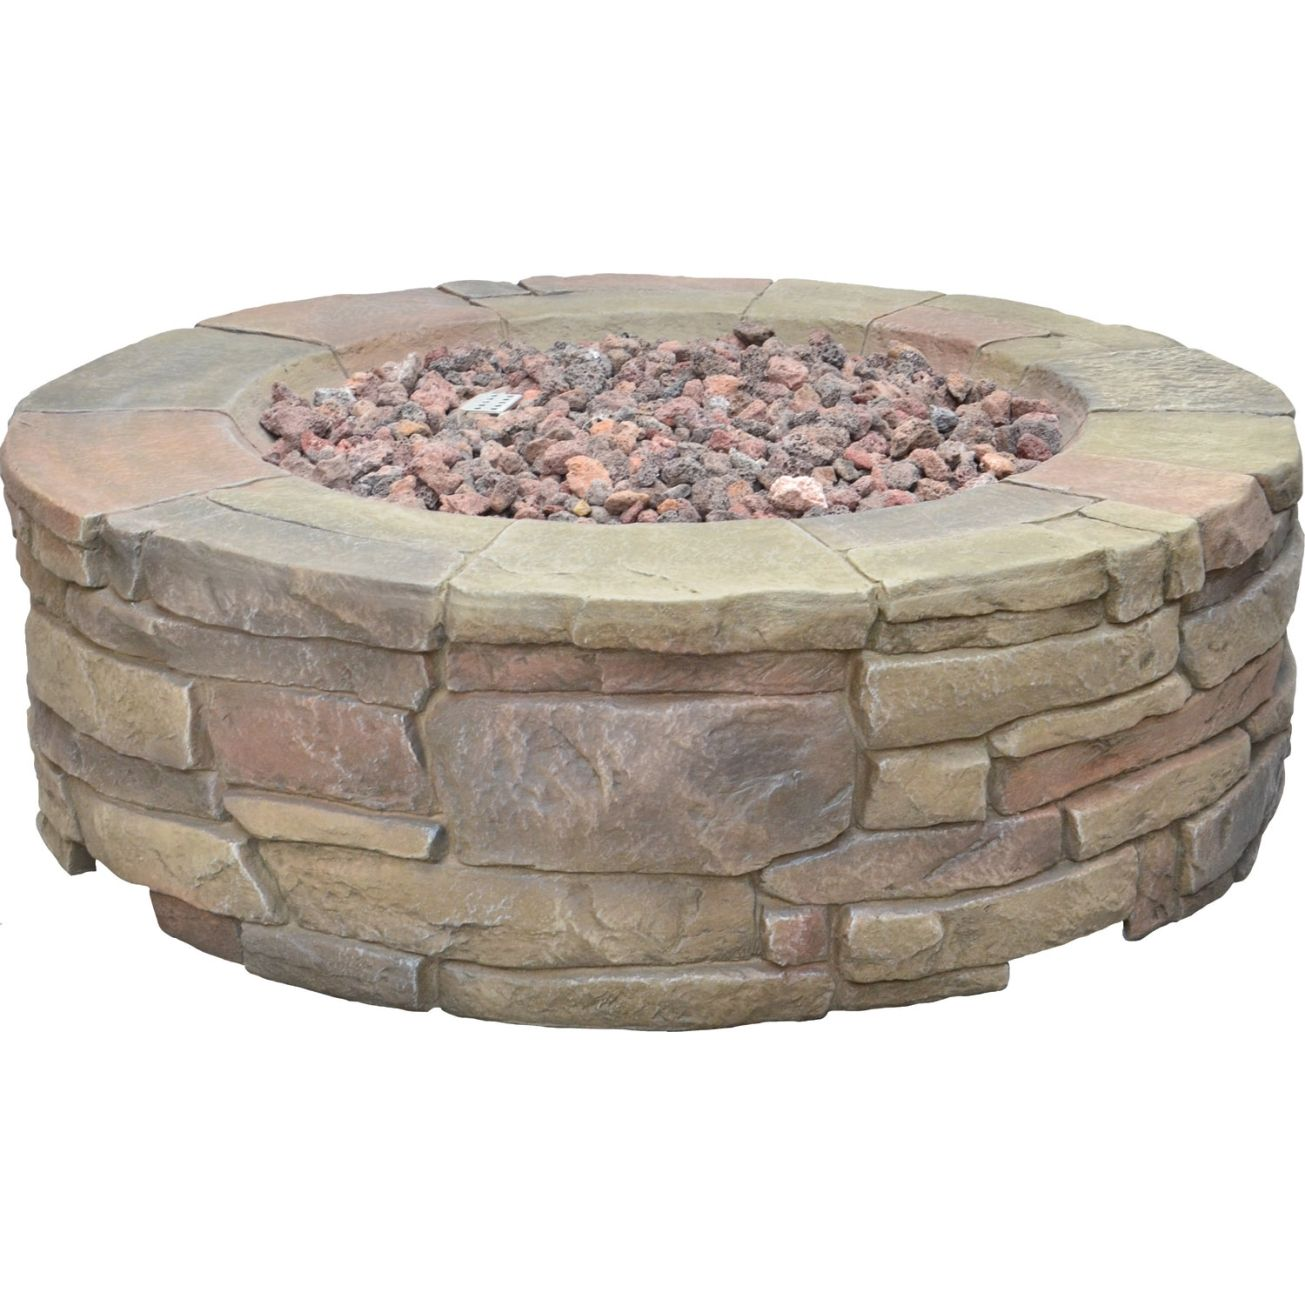 Petra Gas Firepit (67803A) - Outdoor Fireplaces - Ace ... on Ace Hardware Fire Pit id=64510